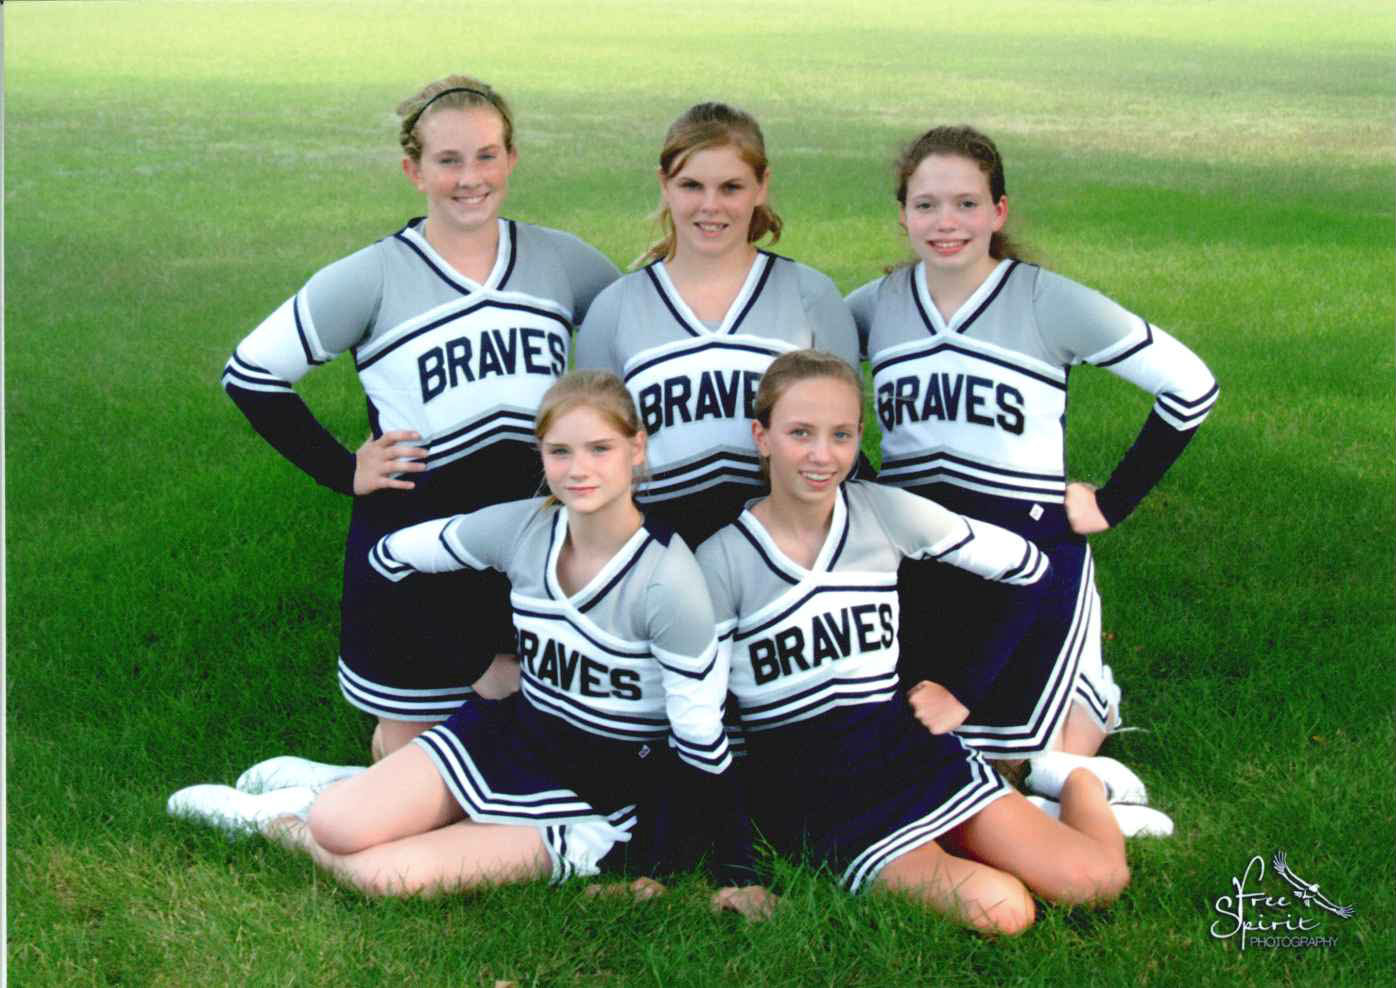 Junior High School Cheerleaders